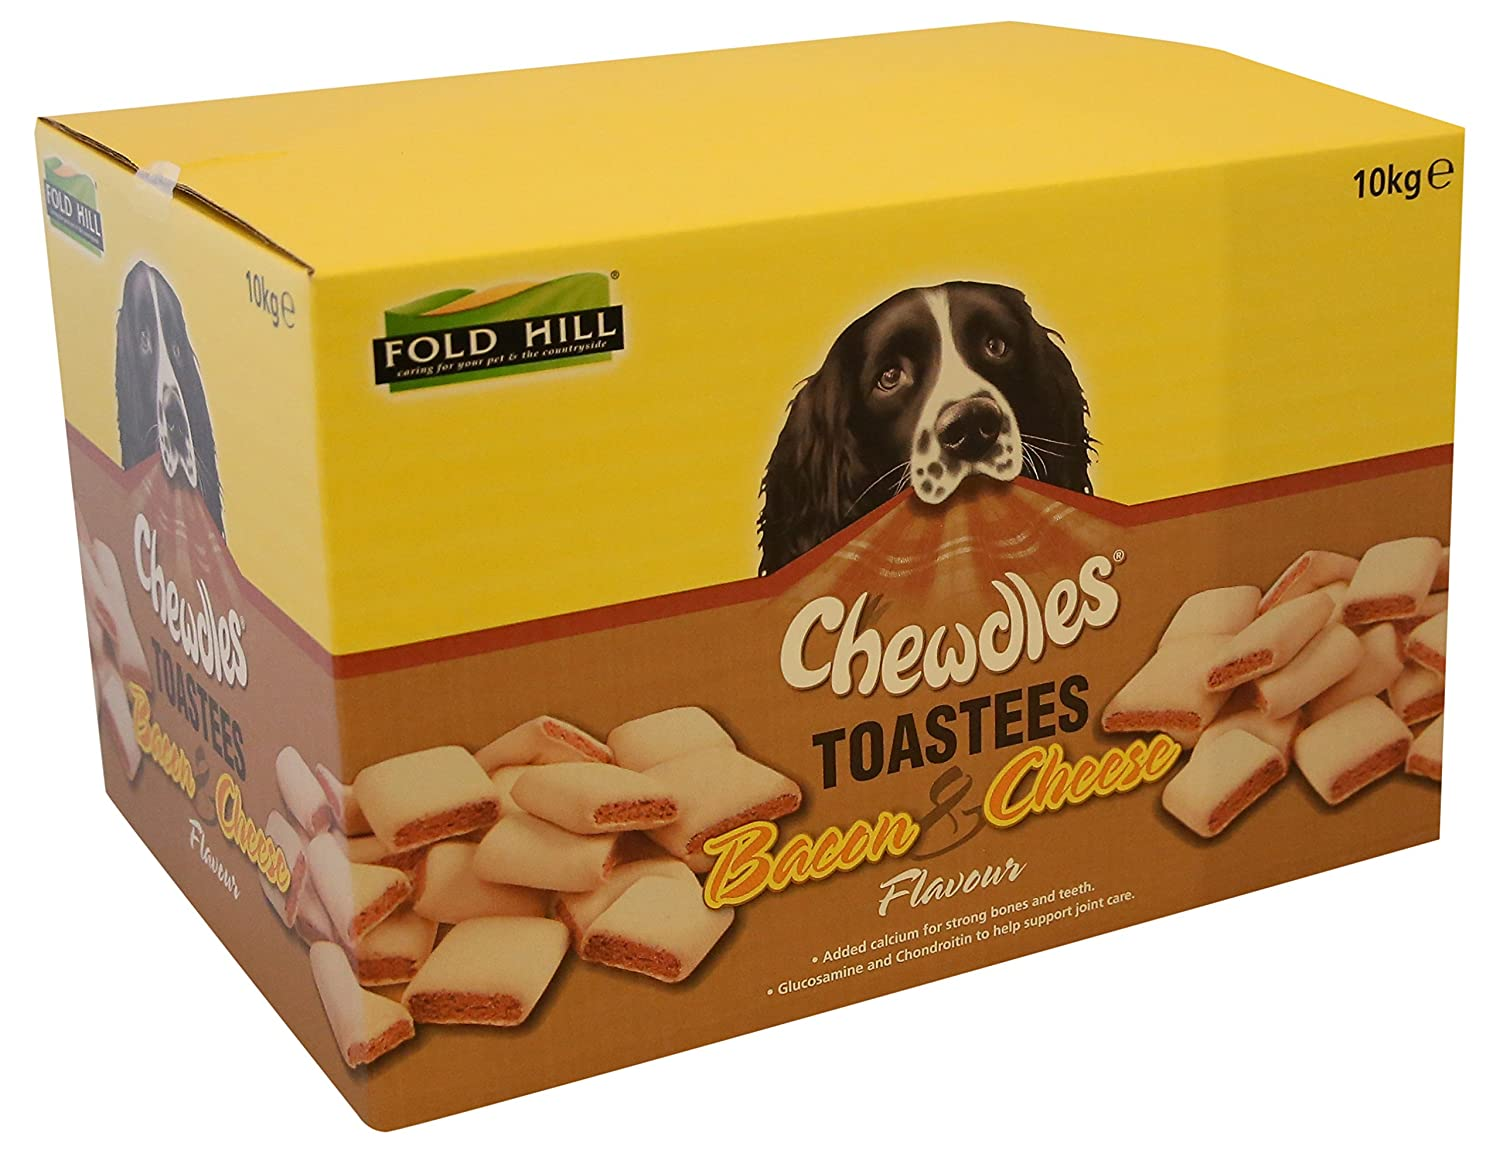 Fold Hill Chewdles Toastees Bacon and Cheese Flavour 10kg